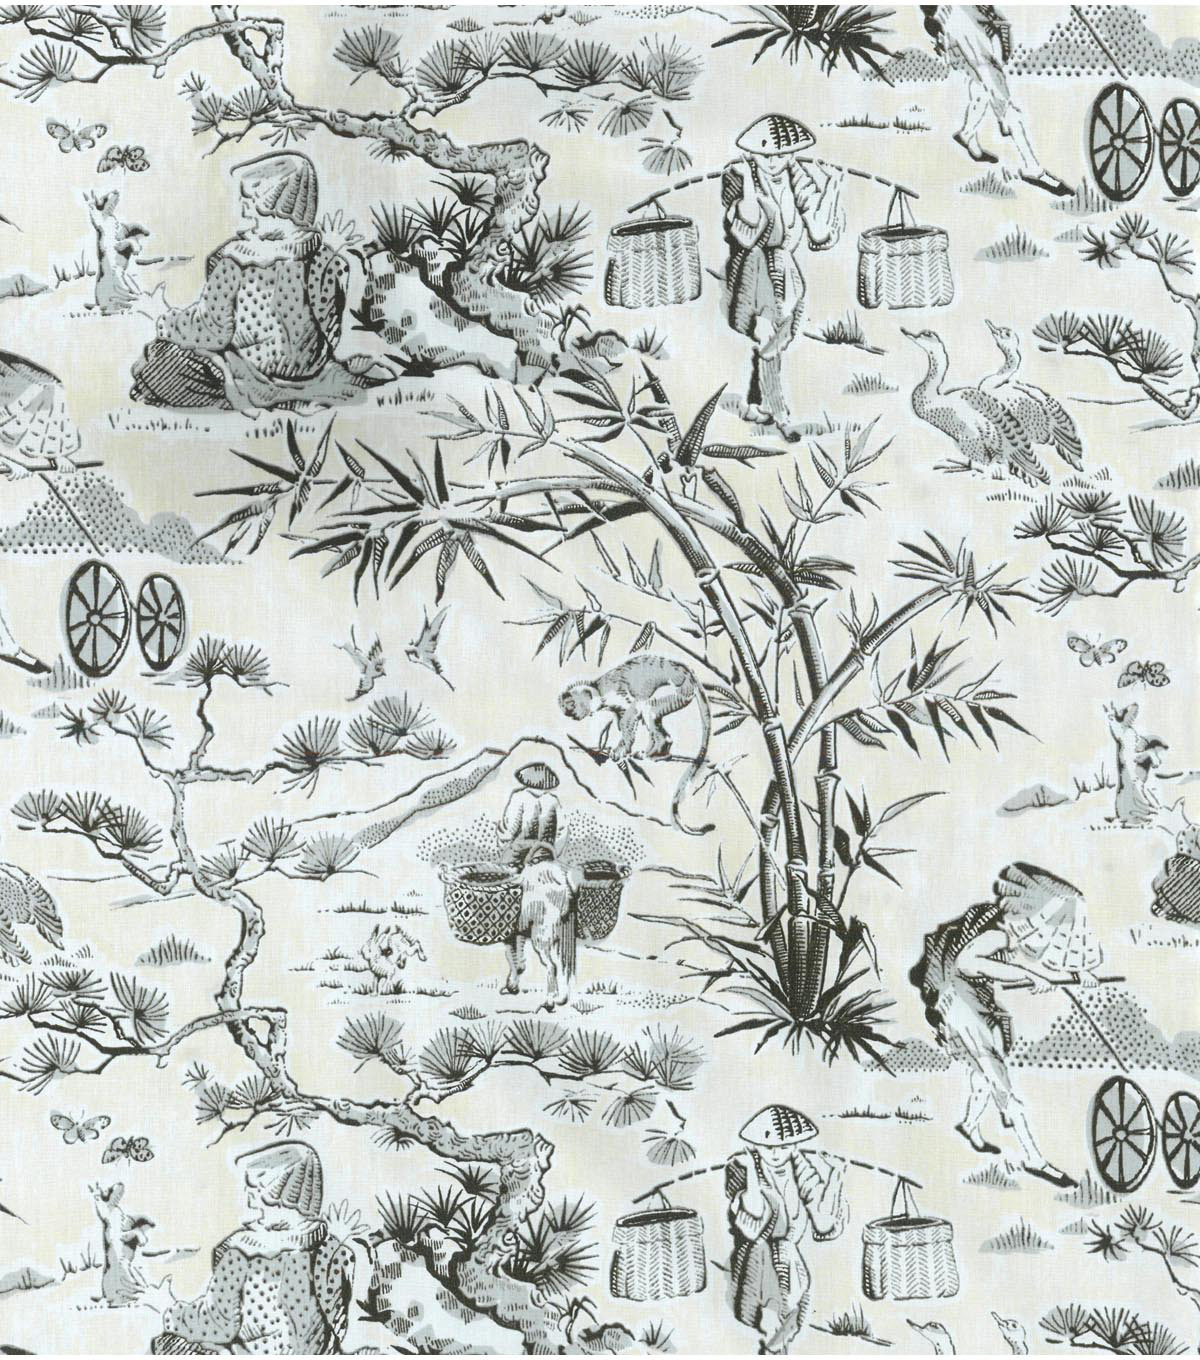 Home Decor 8\u0022x8\u0022 Swatch Fabric-Waverly Haiku Toile Noir